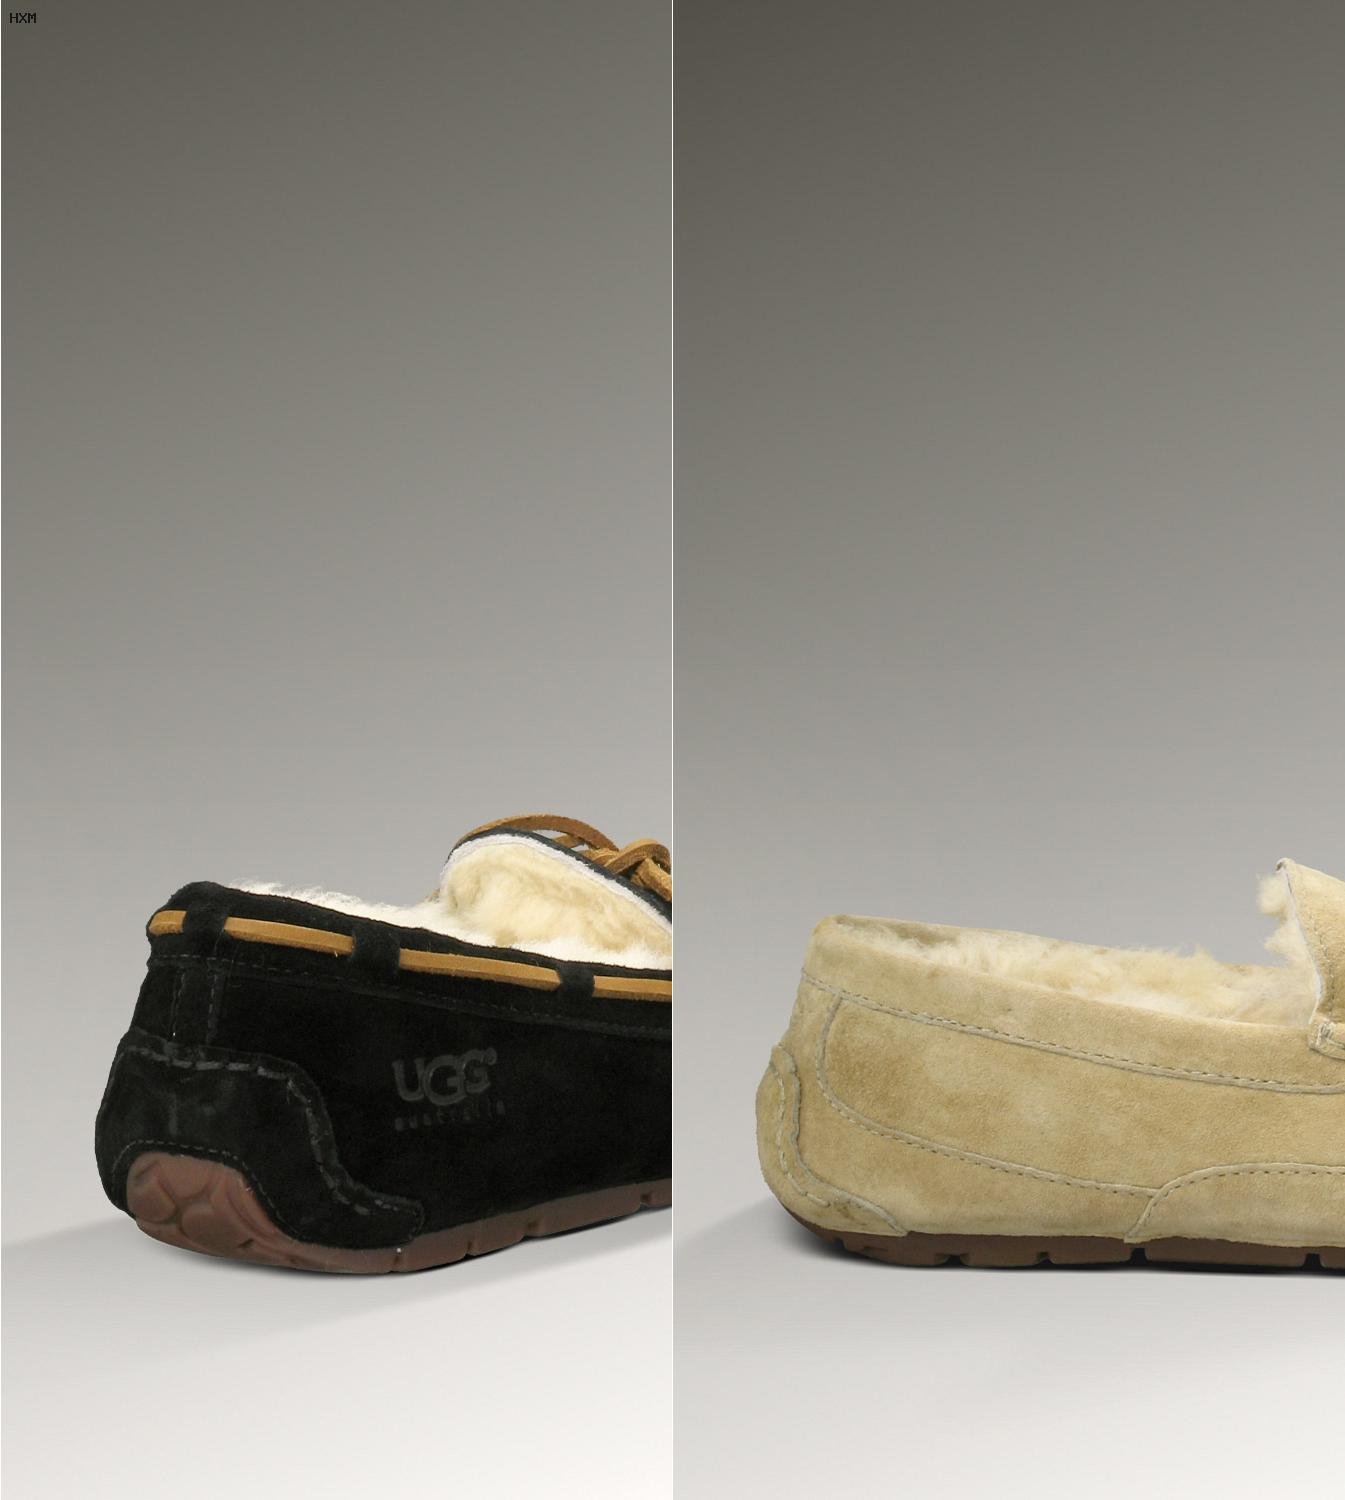 ugg boots australia factory outlet